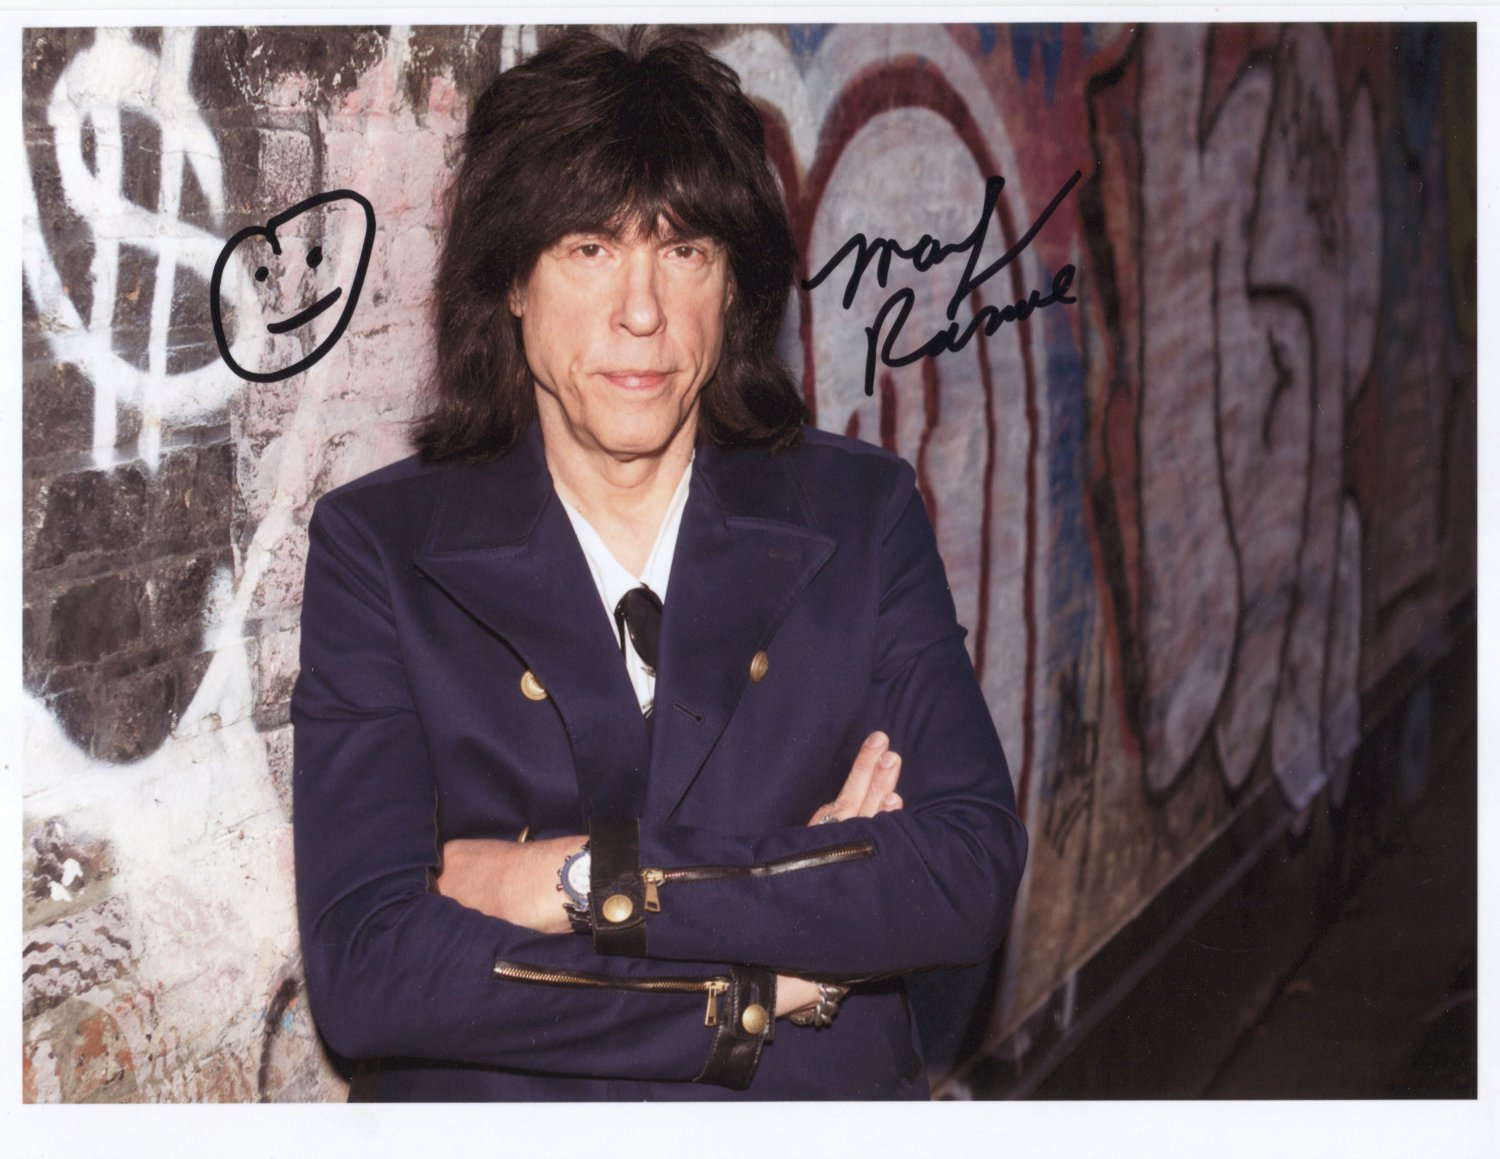 Marky Ramone (The Ramones) SIGNED Photo + Certificate Of Authentication  100% Genuine